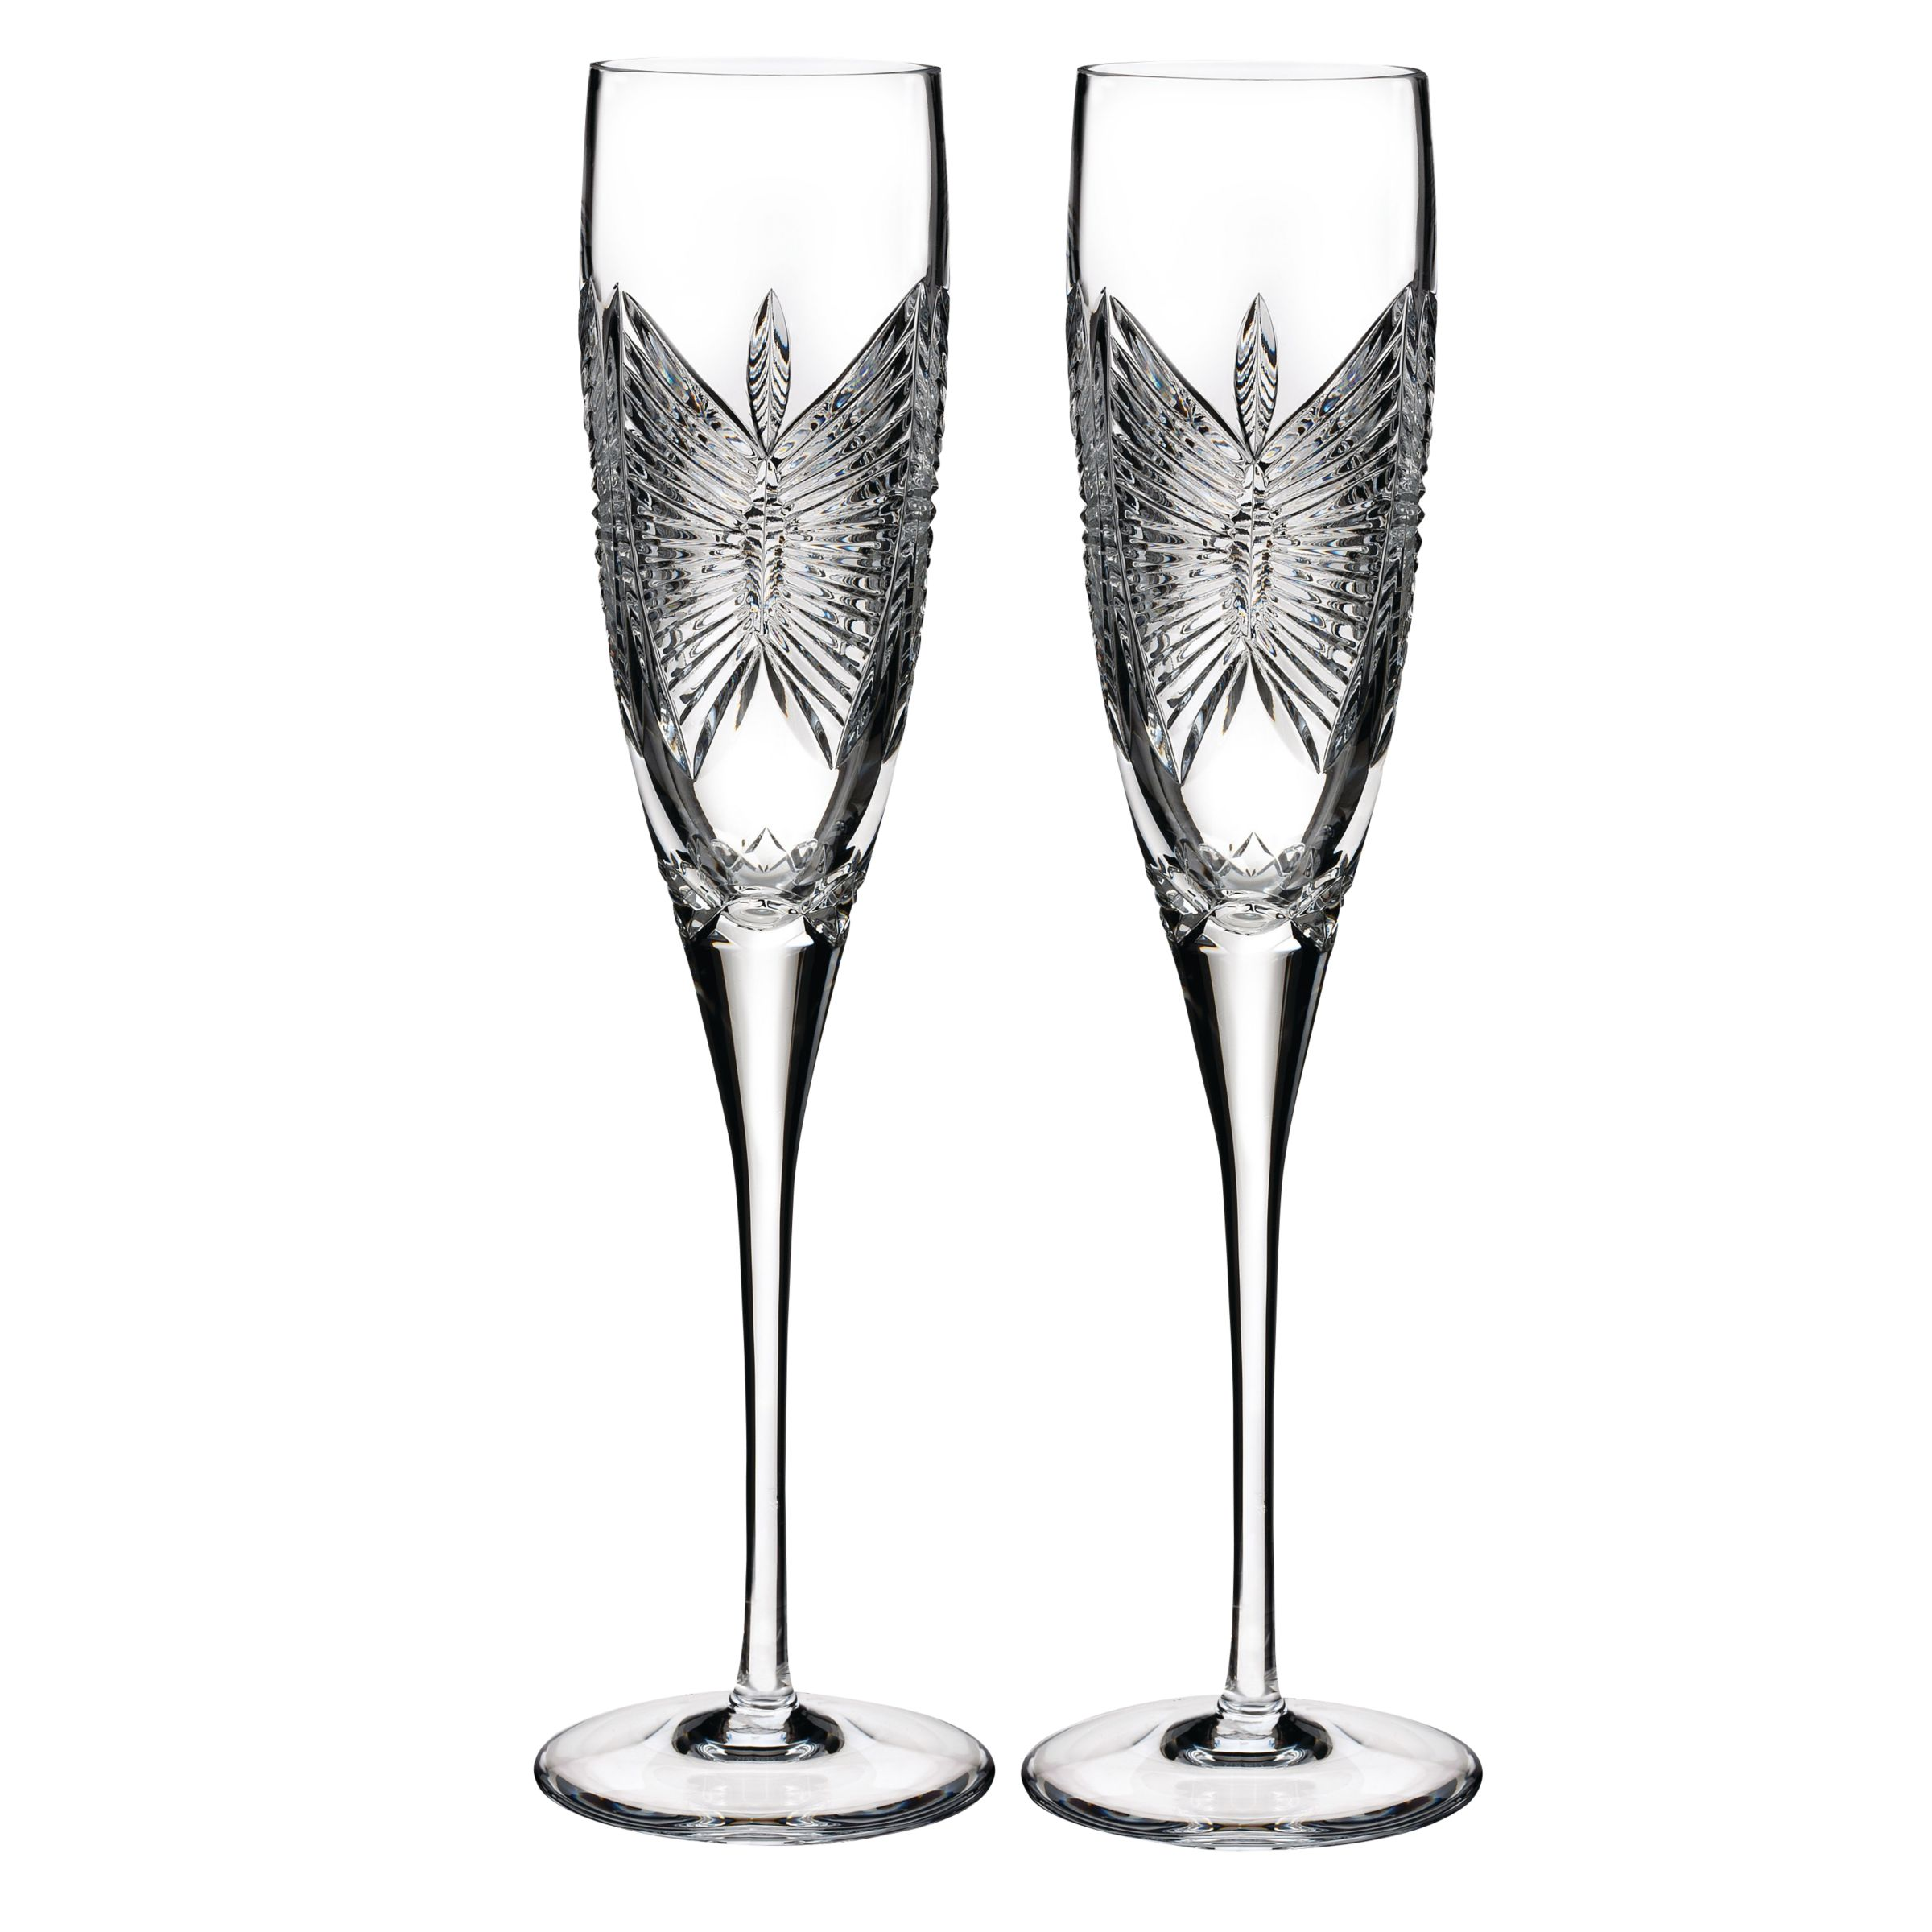 Waterford Waterford Happiness Toasting Flute, Set of 2